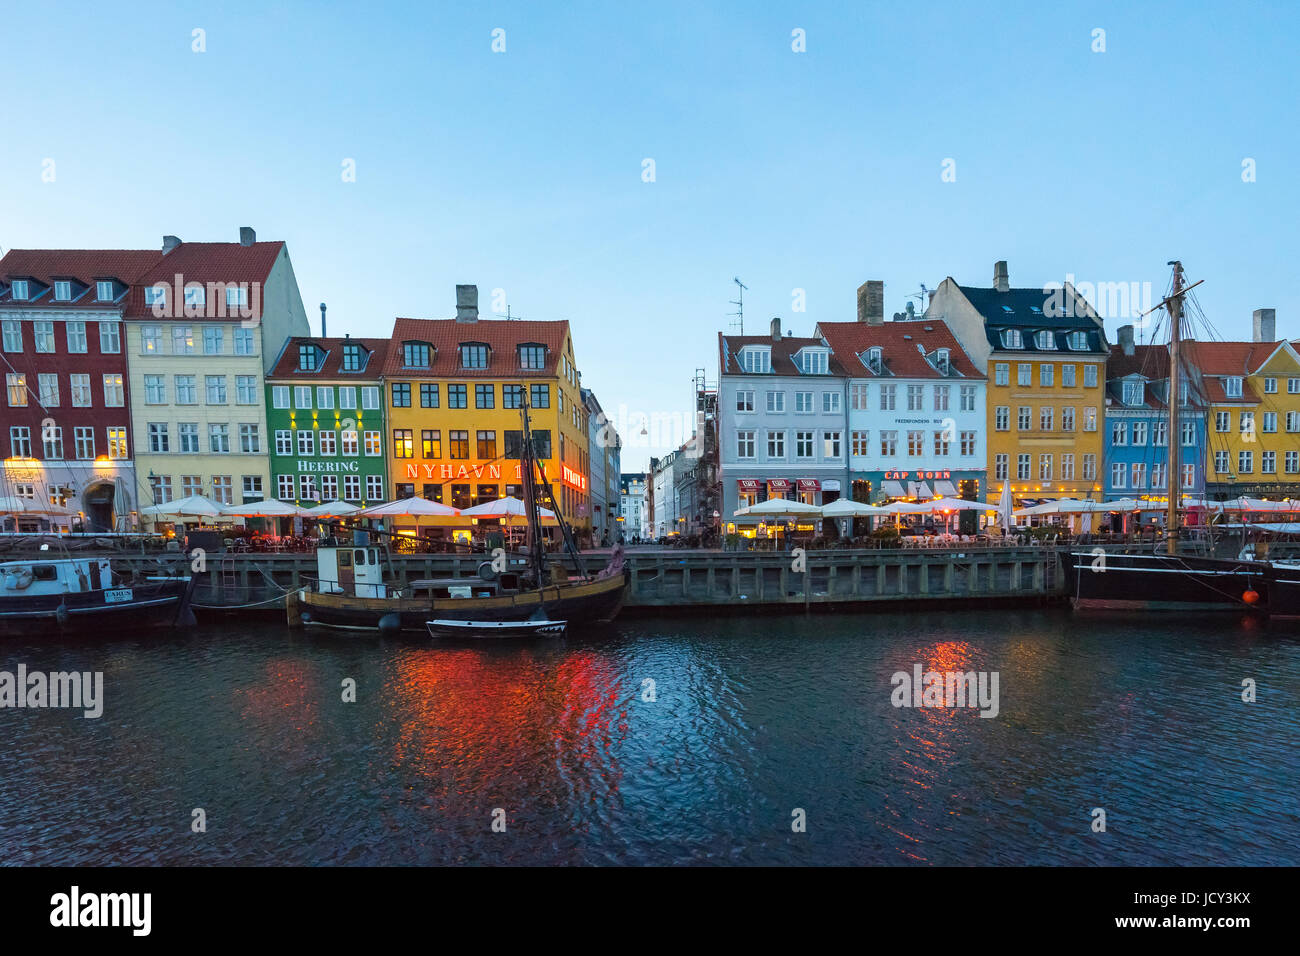 Copenhagen, Denmark - May 1, 2017: Nyhavn is a 17th-century waterfront, canal and entertainment district in Copenhagen, - Stock Image